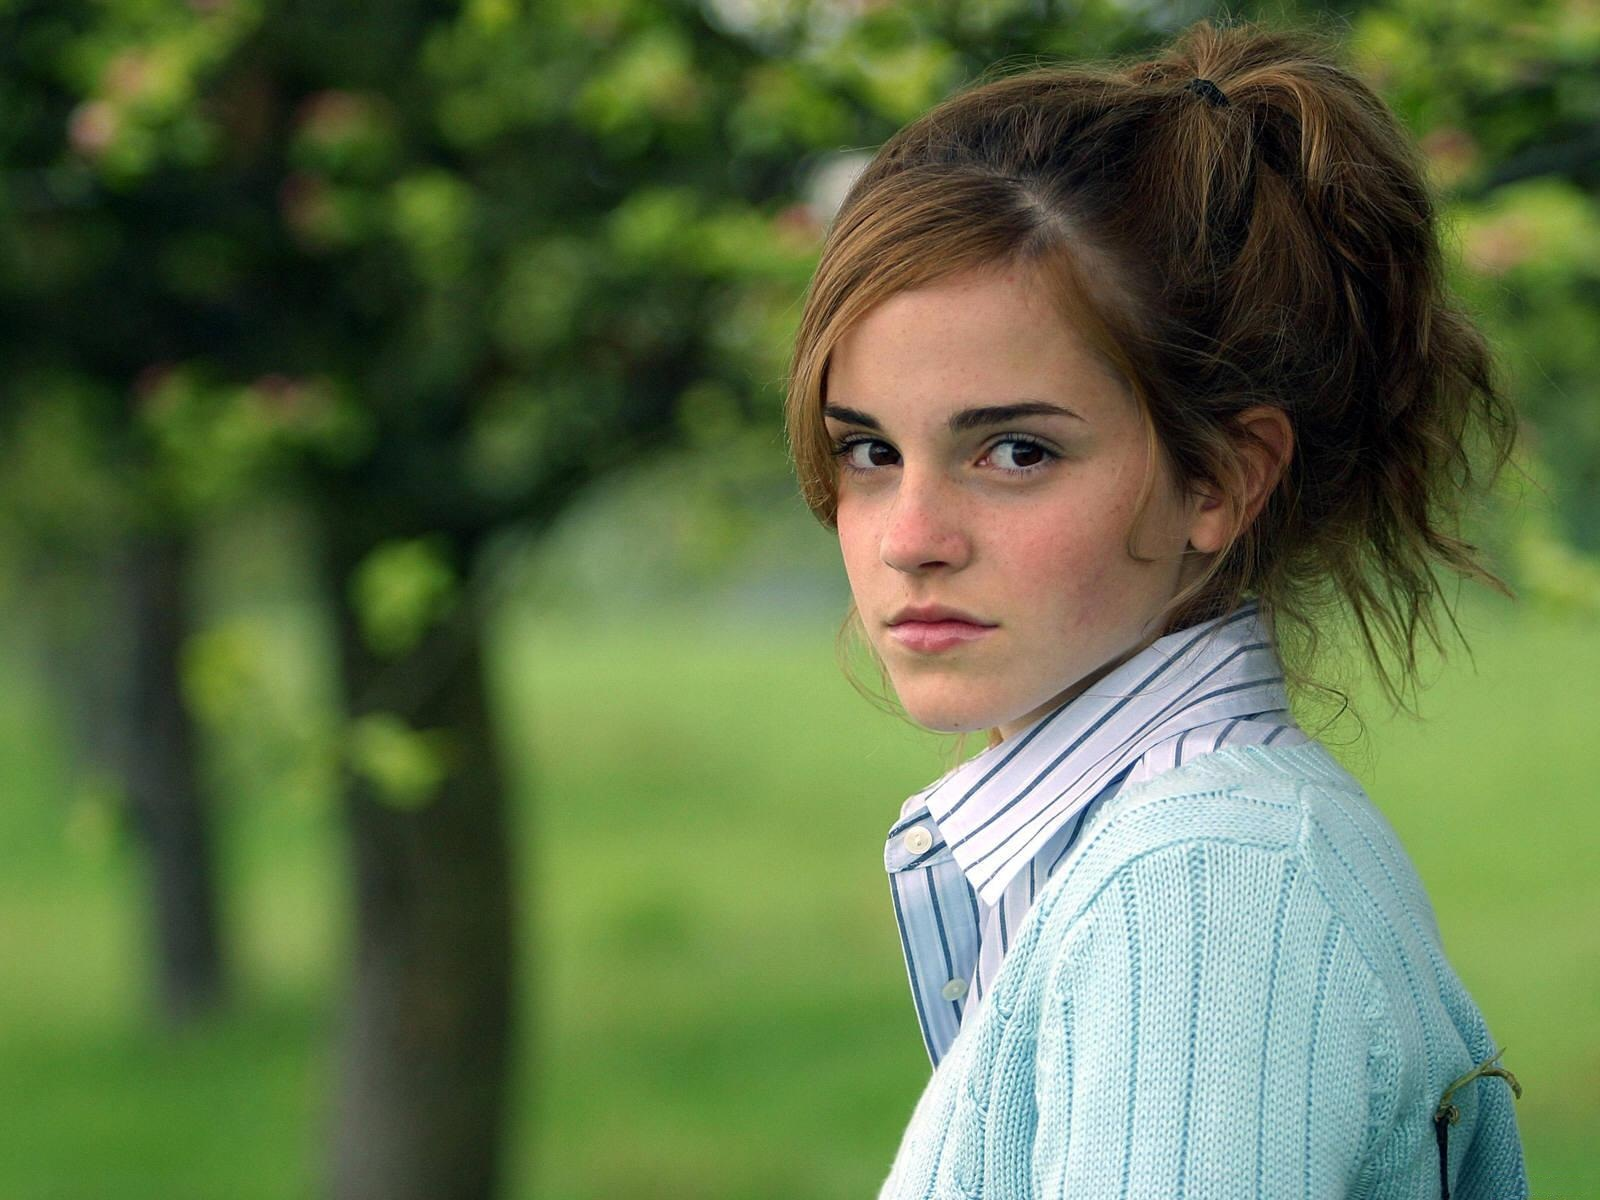 Beautiful Emma Watson Lovely Face Look With Natural Background Trees Still Hd Mobile Desktop Free Wallpaper